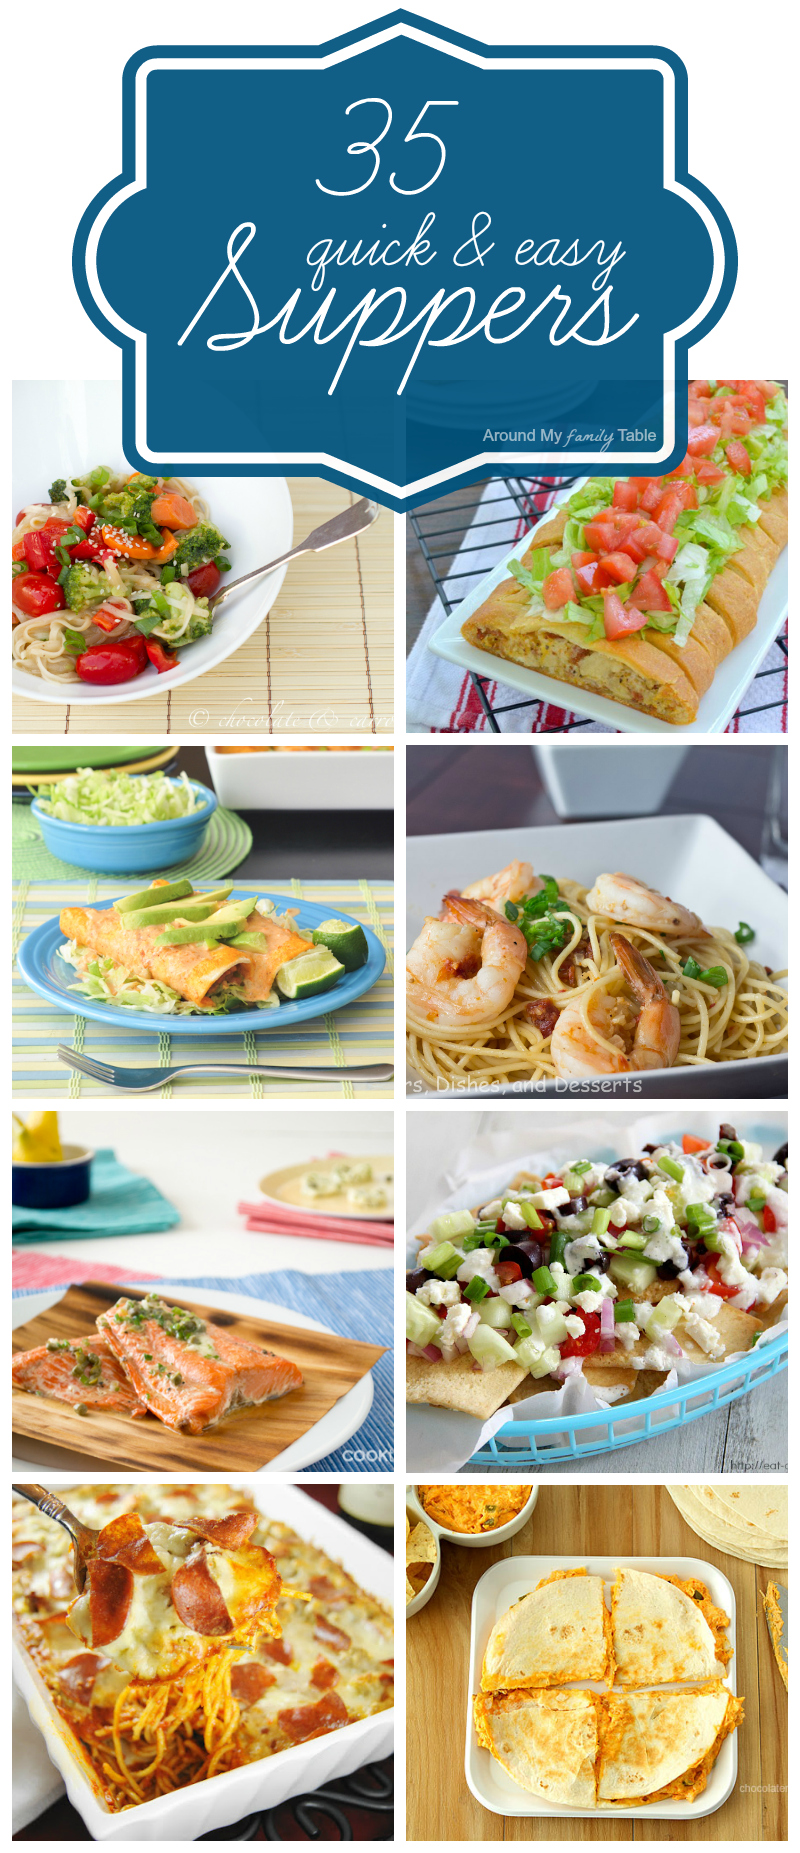 35 Quick & Easy Supper Ideas